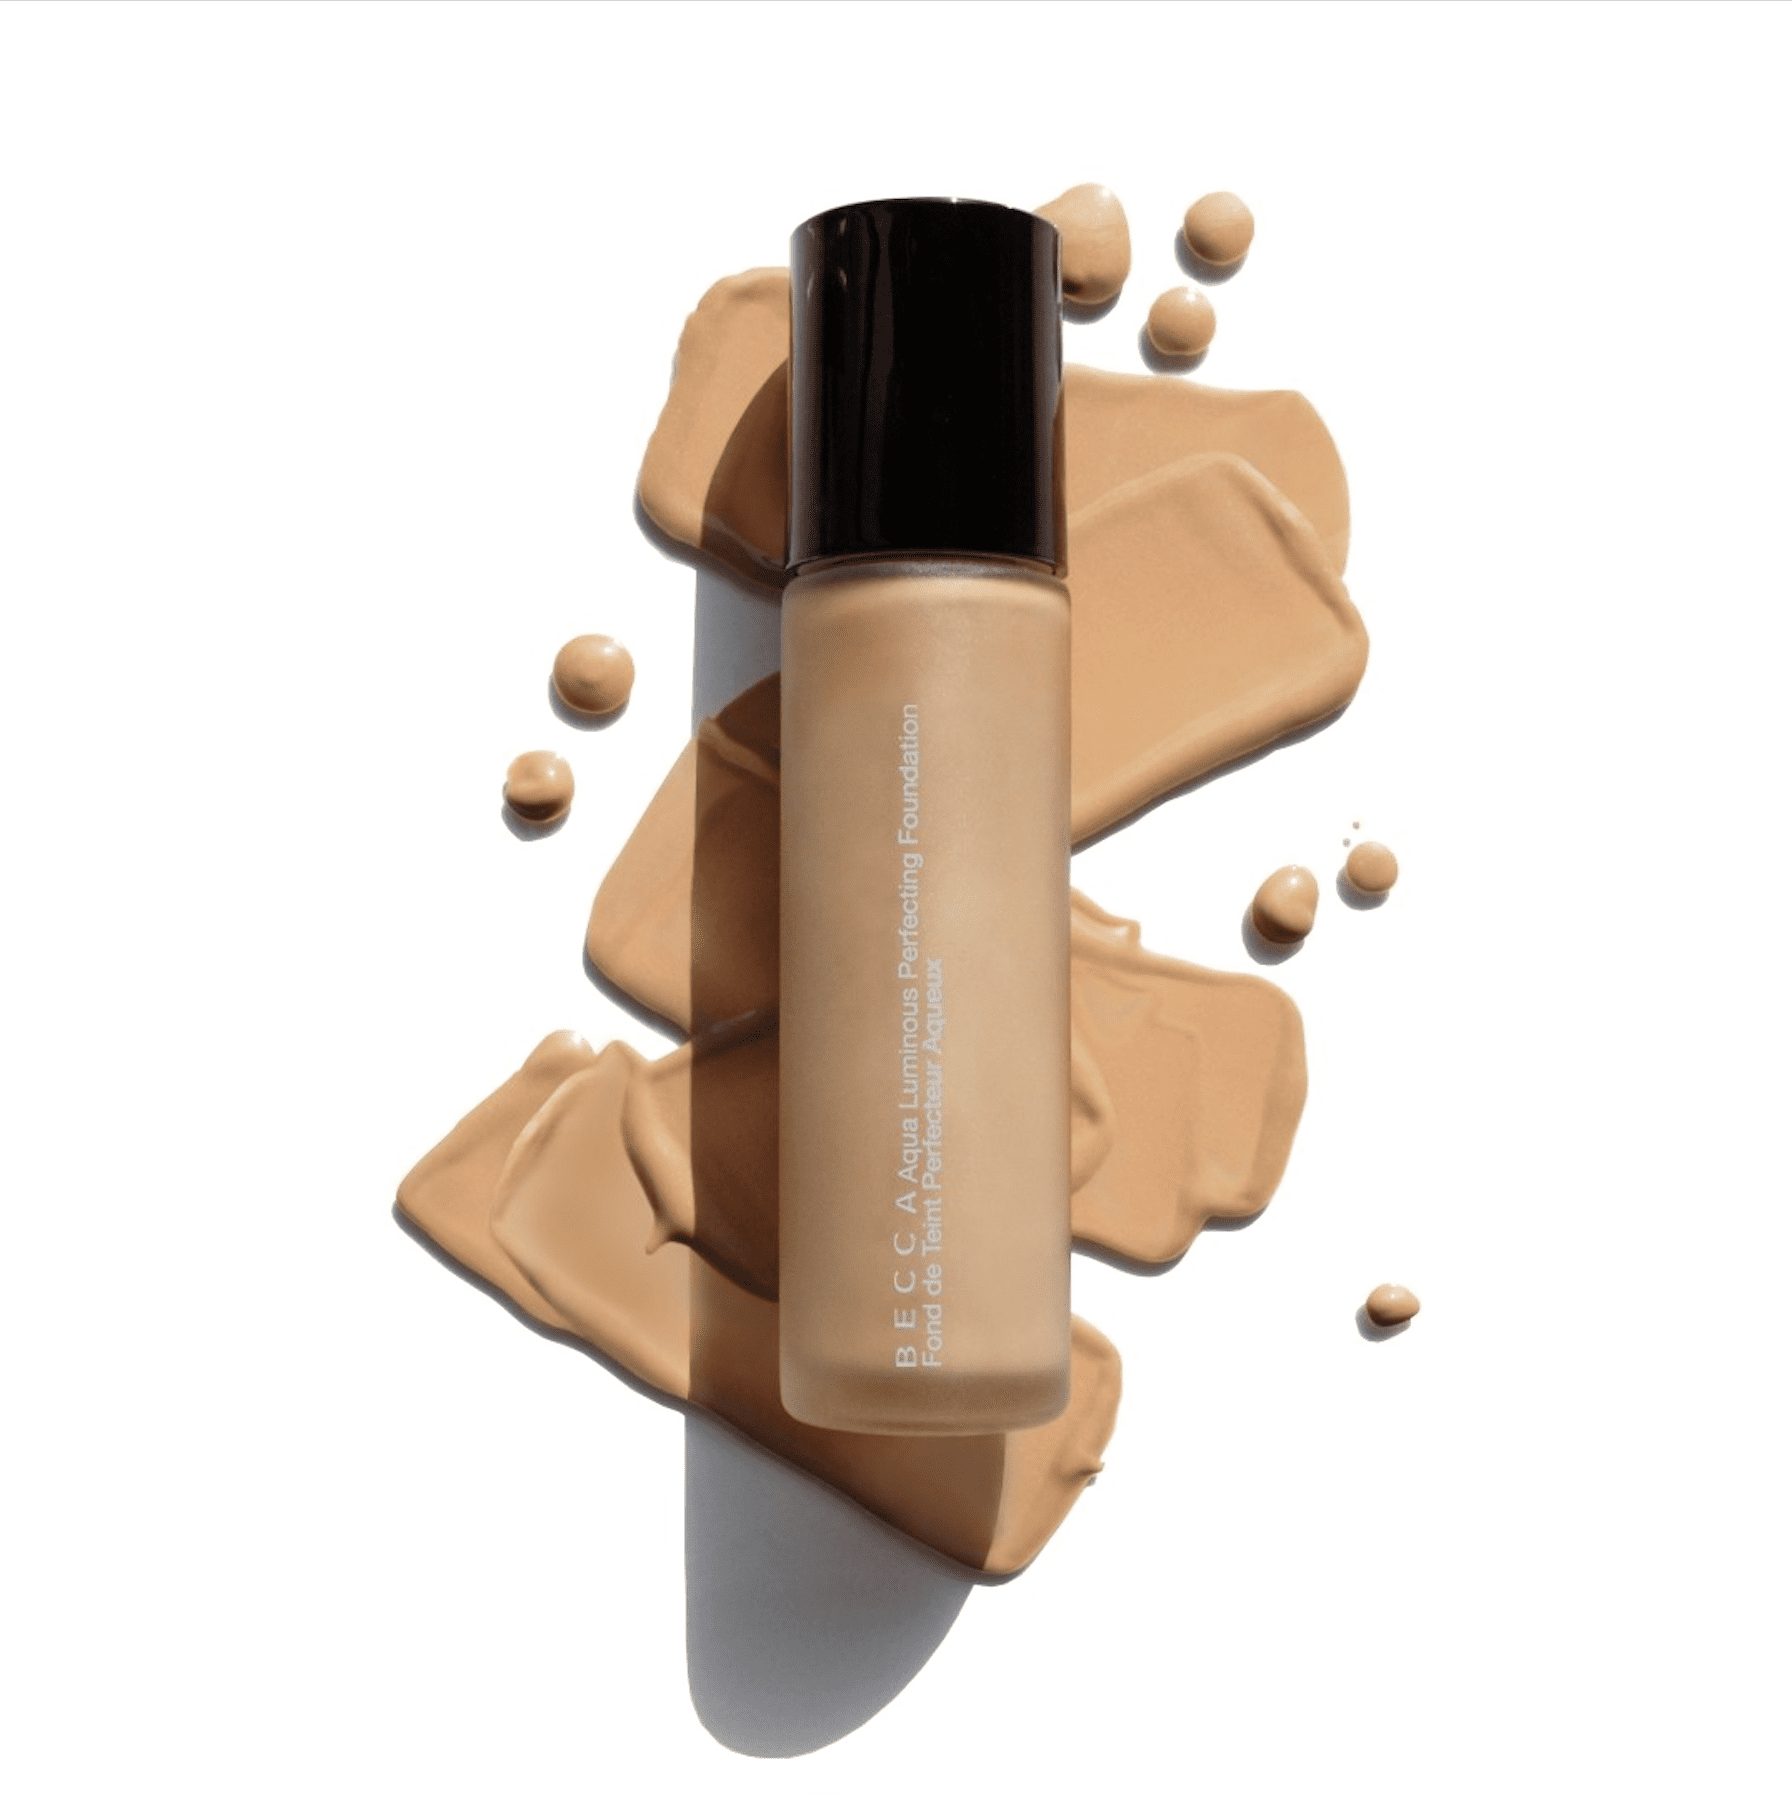 Aqua Luminous Foundation from Becca Cosmetics 1